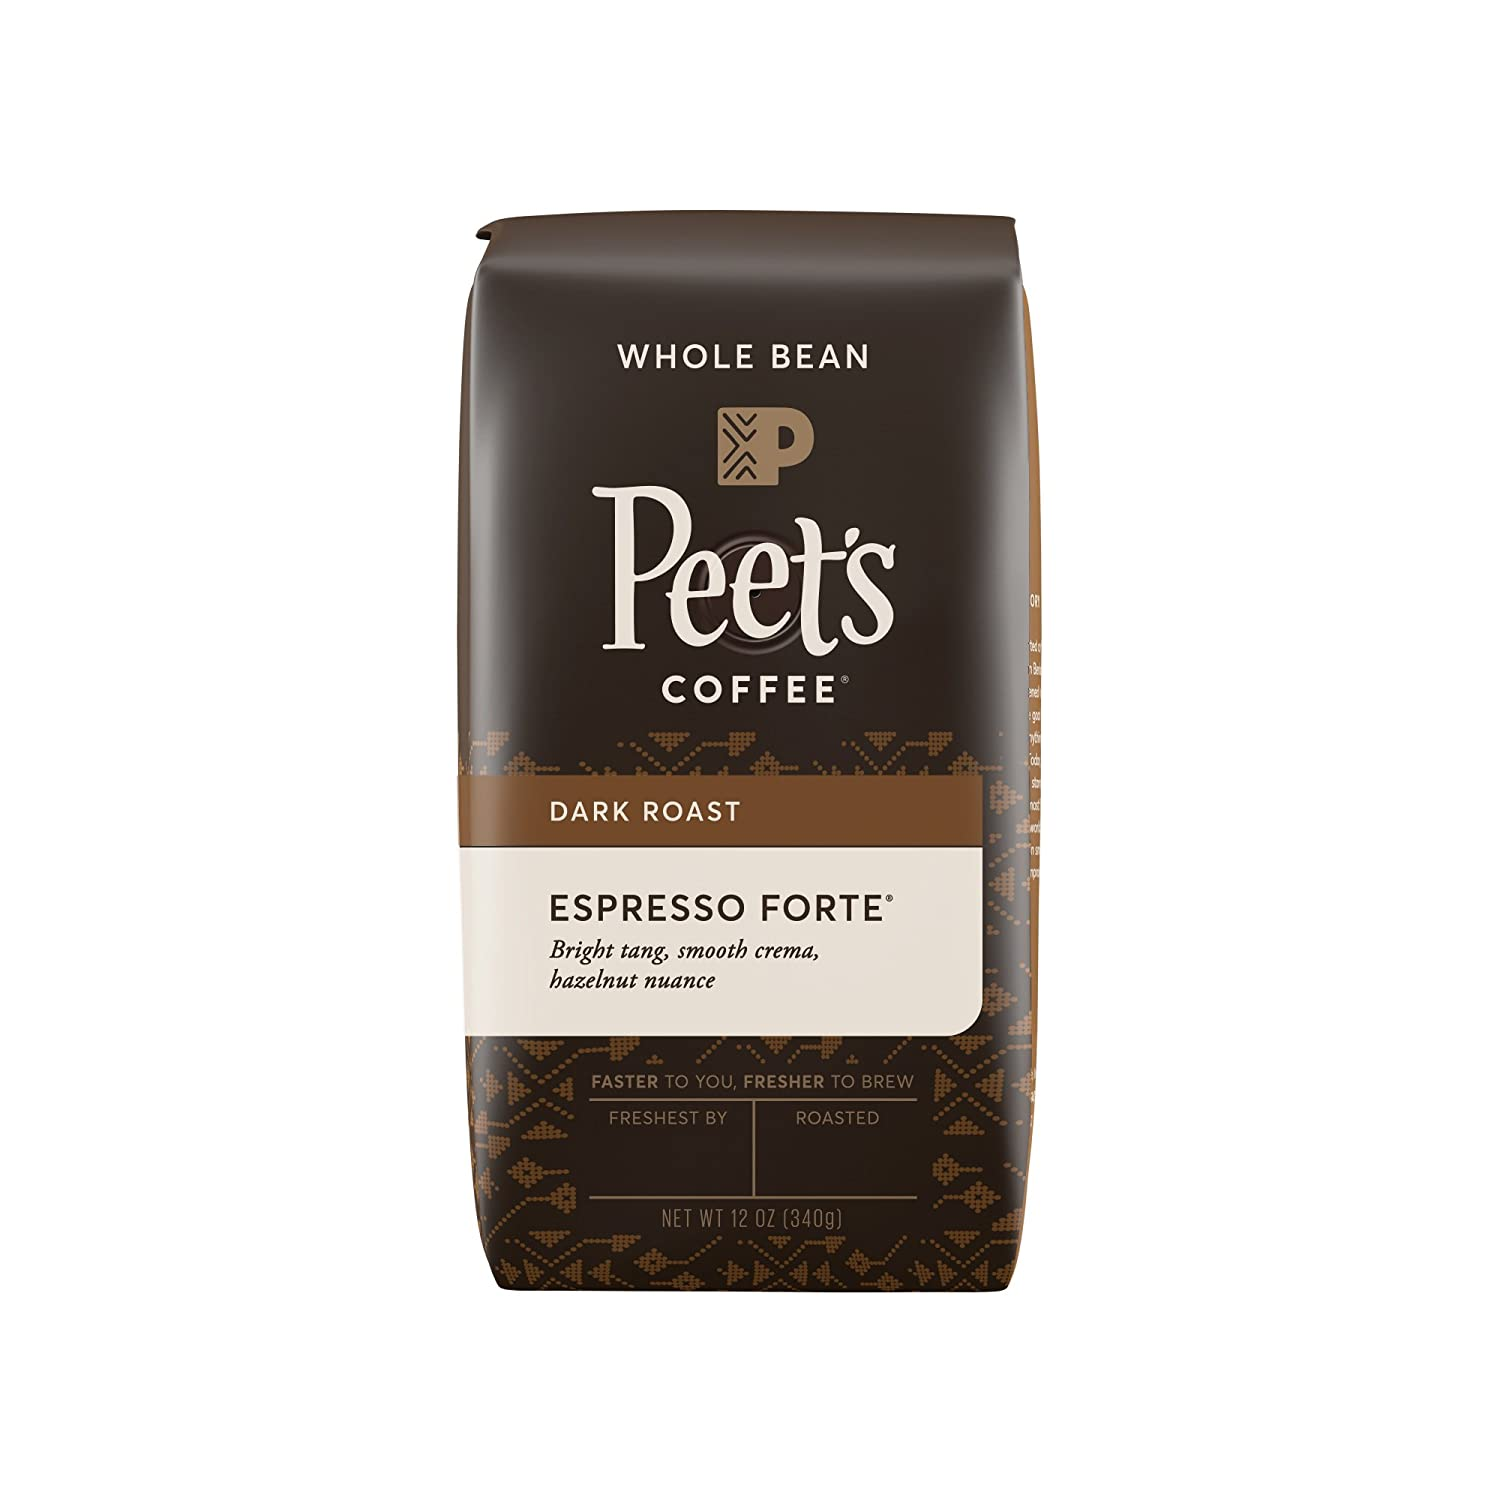 Peet's Coffee Espresso Forte Review